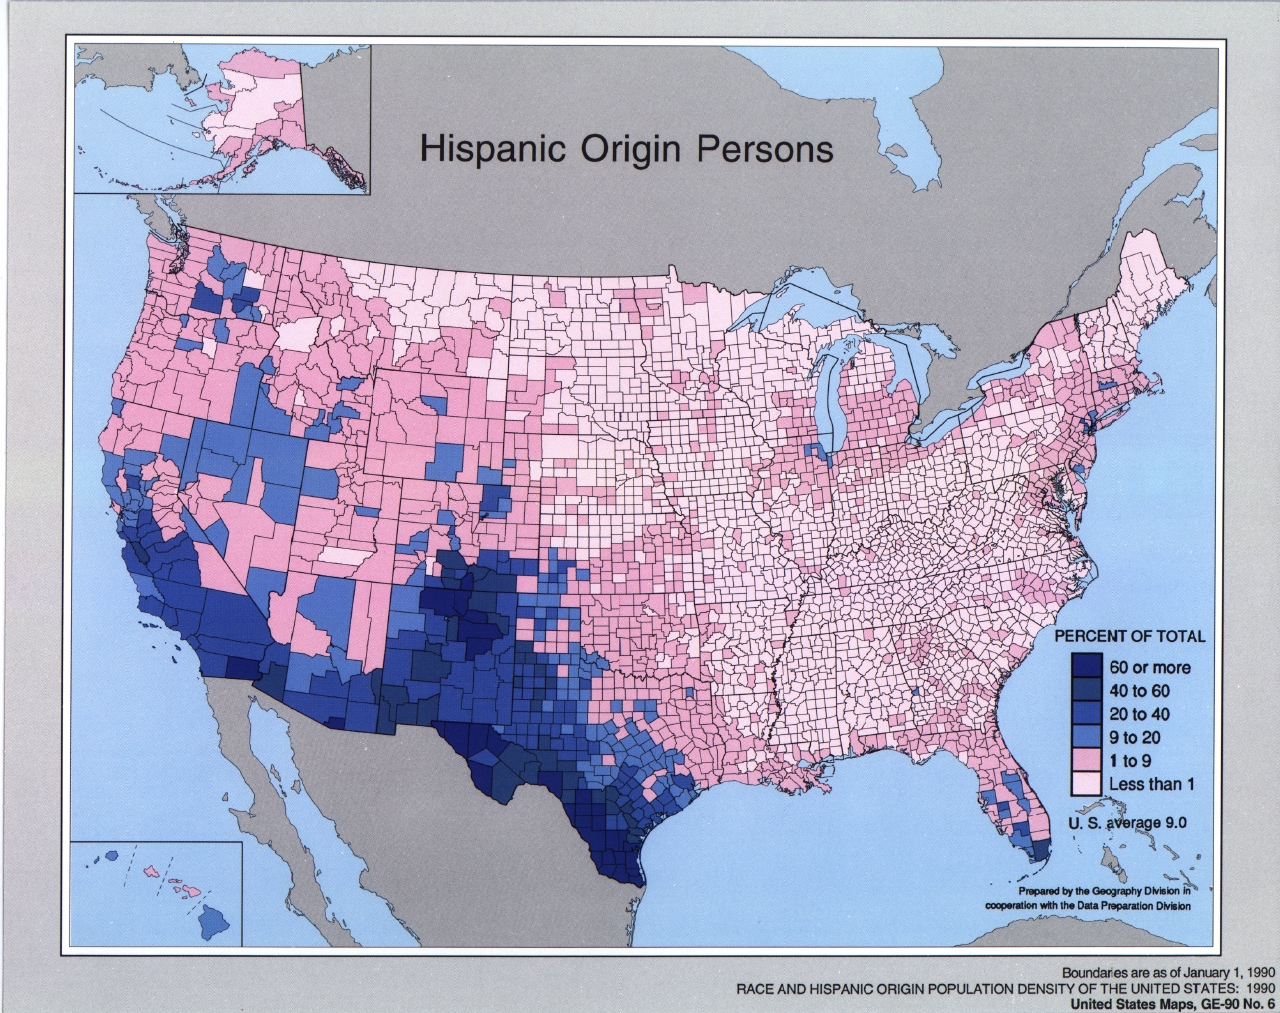 hispanic origin persons jpg 1 24mb